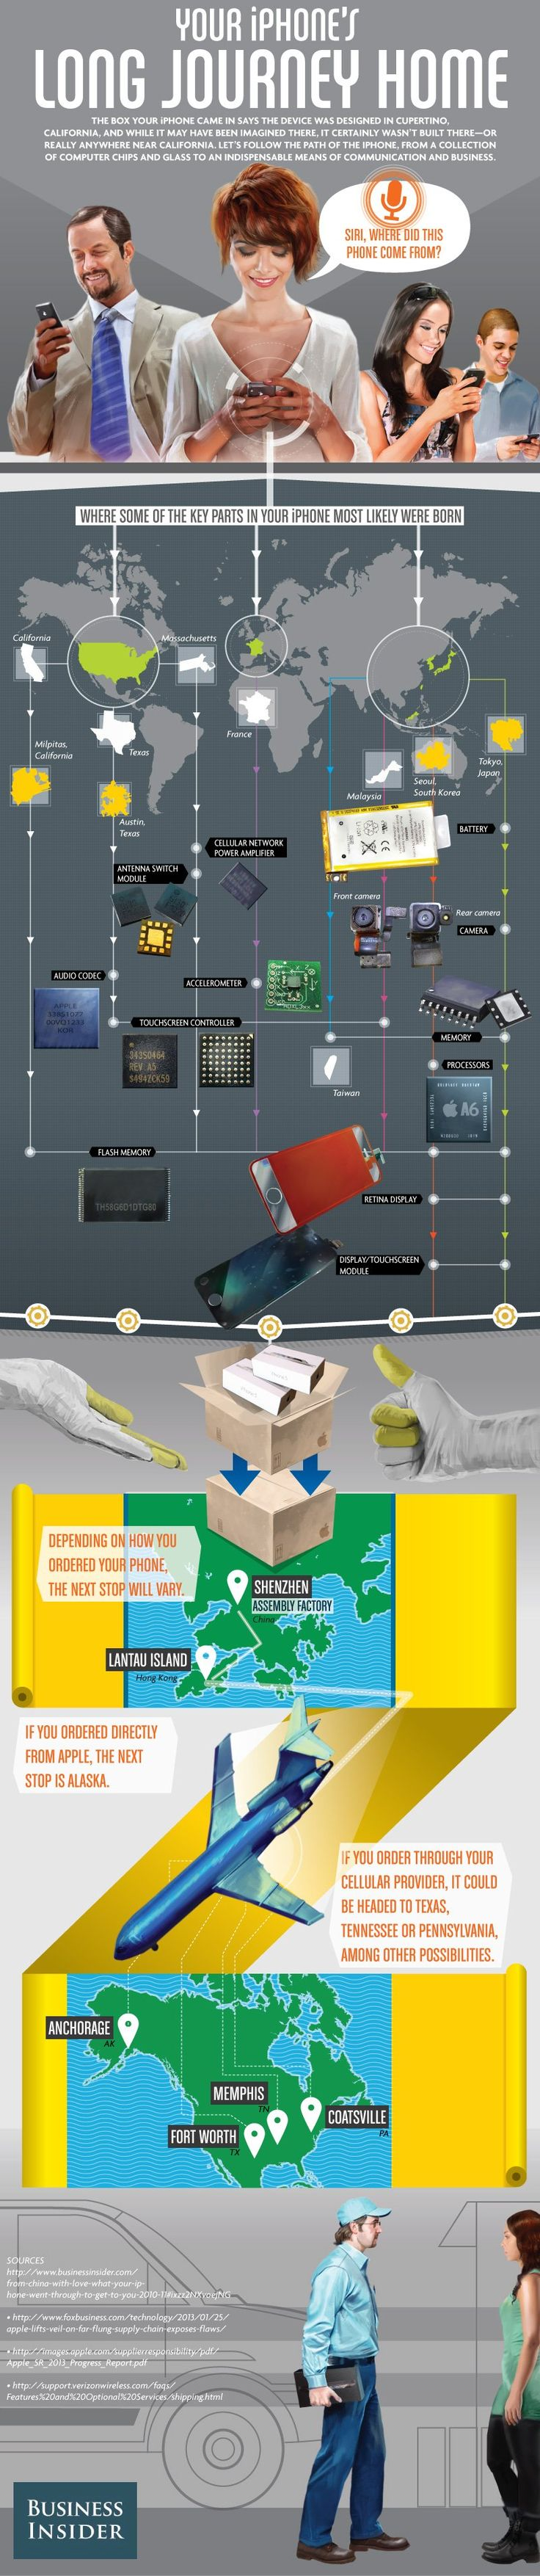 #infograph iphone process with logo